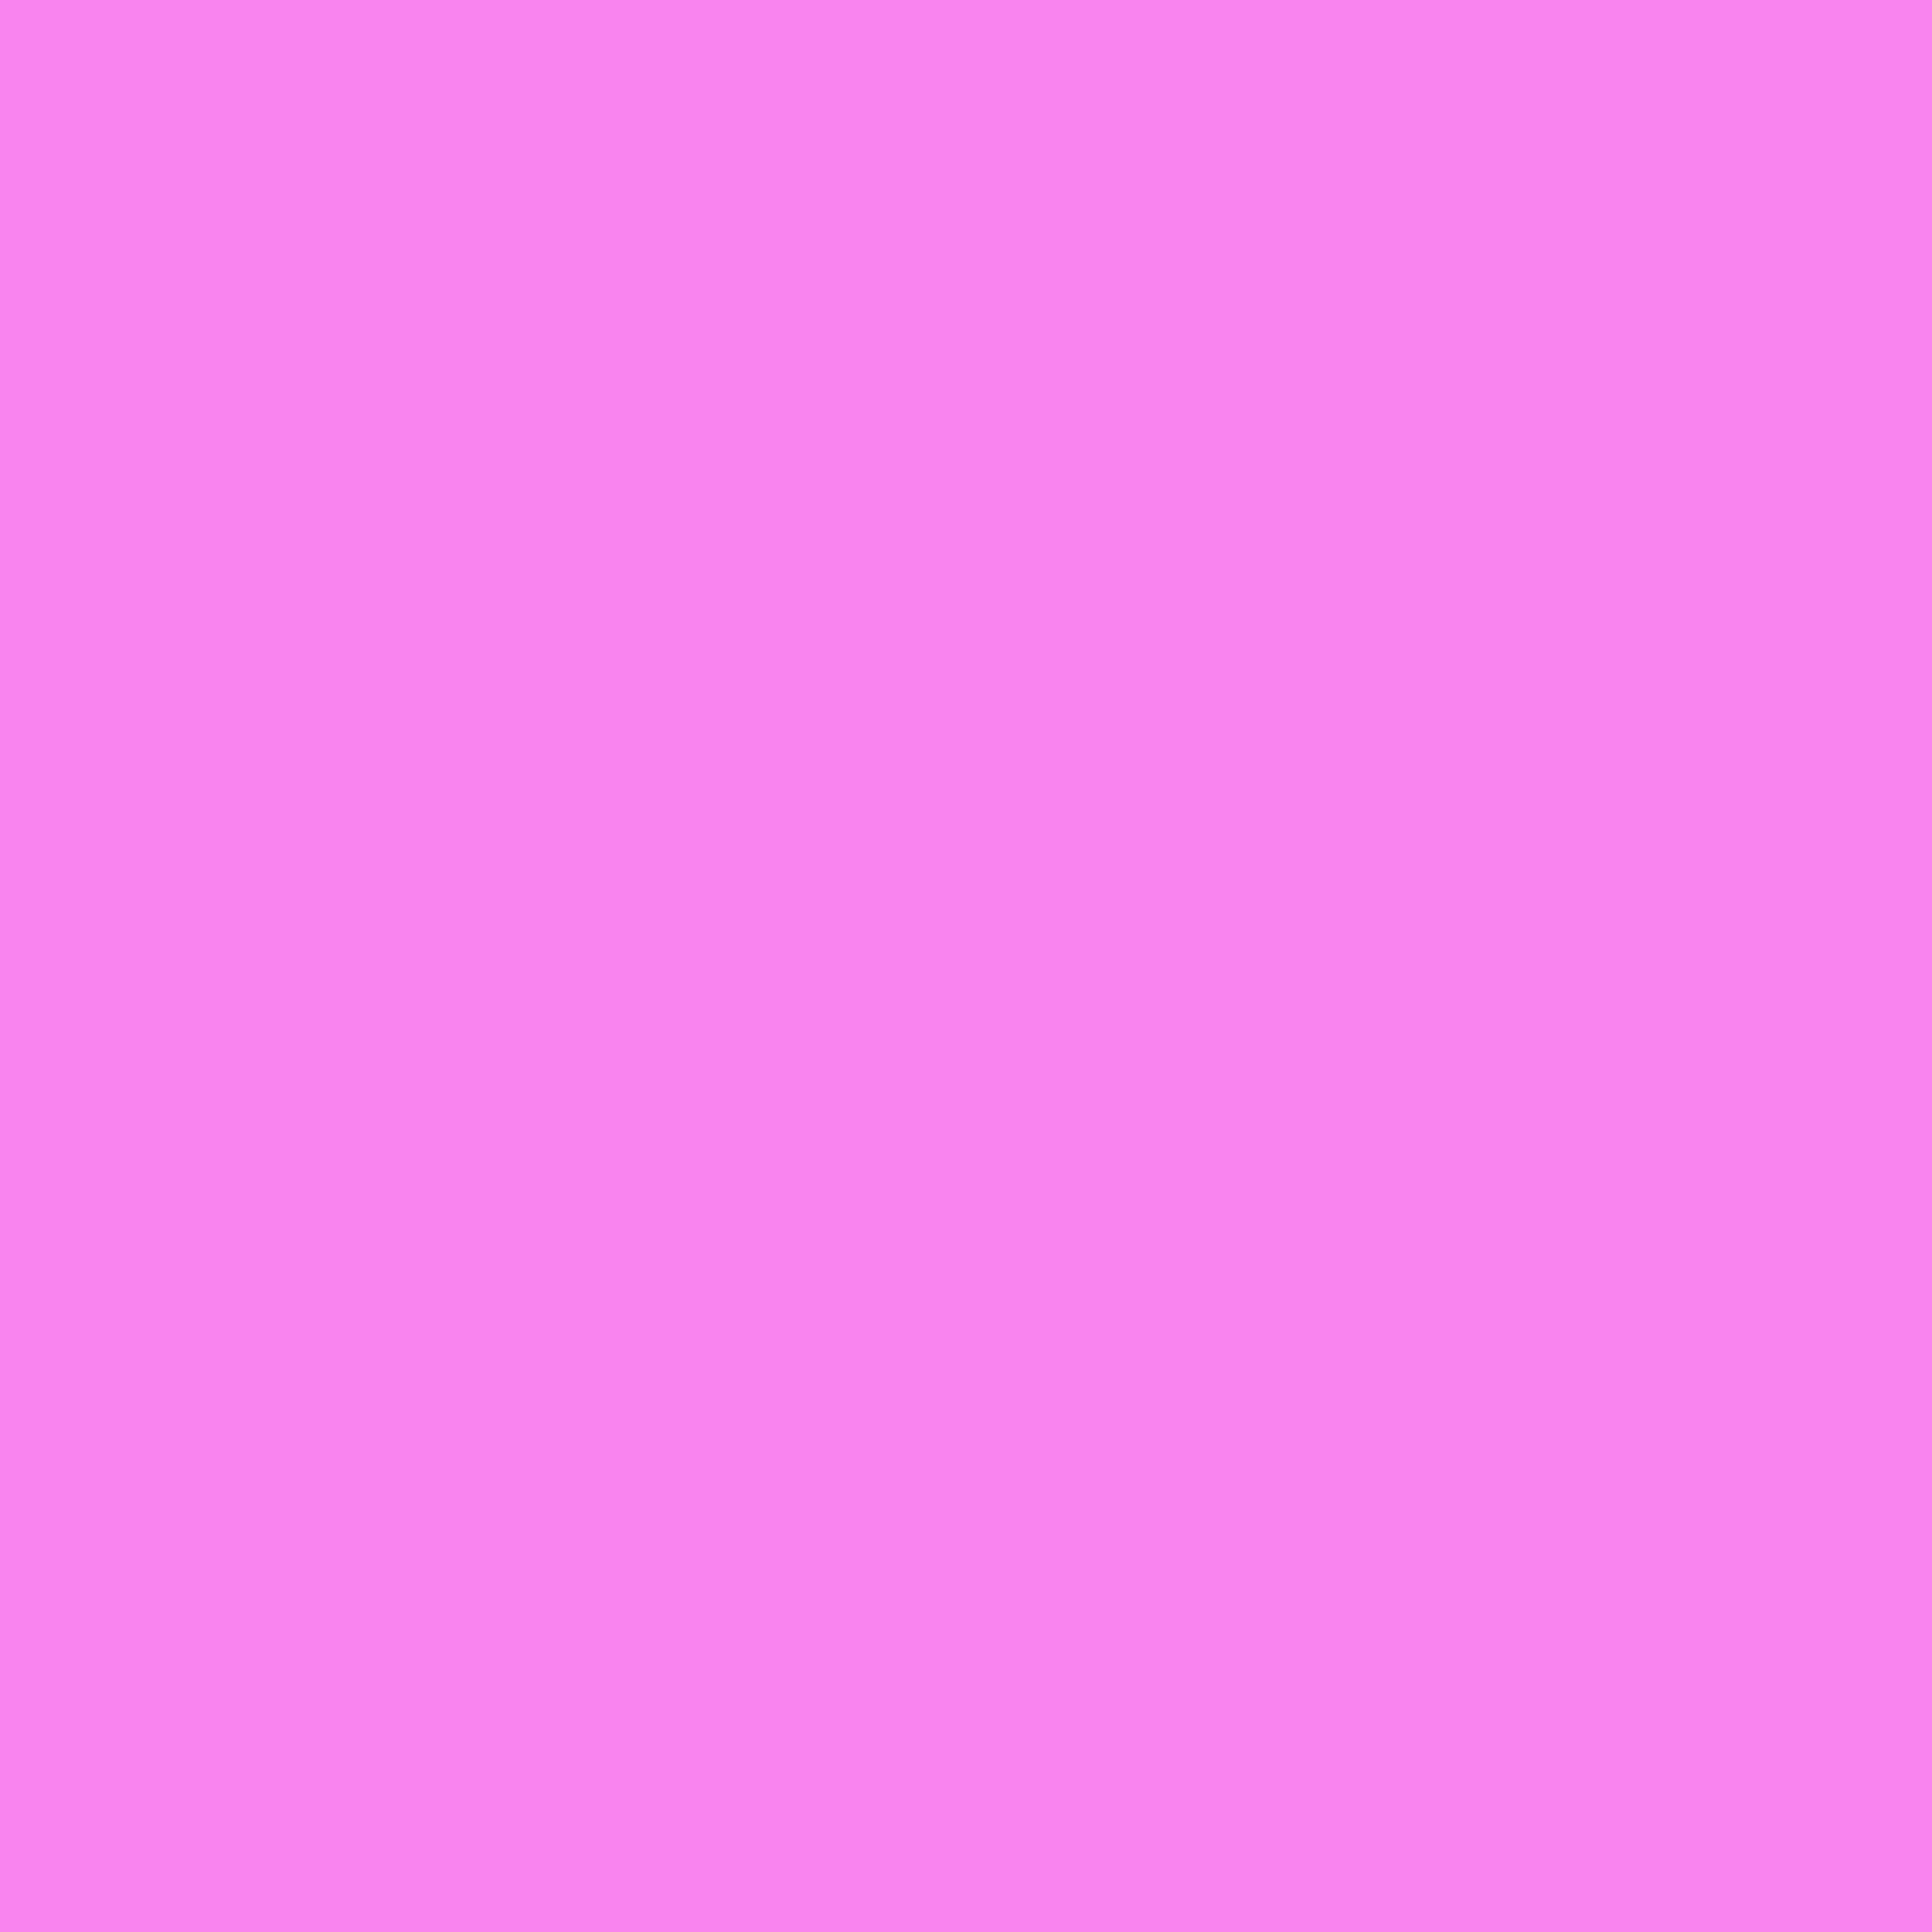 3600x3600 Light Fuchsia Pink Solid Color Background